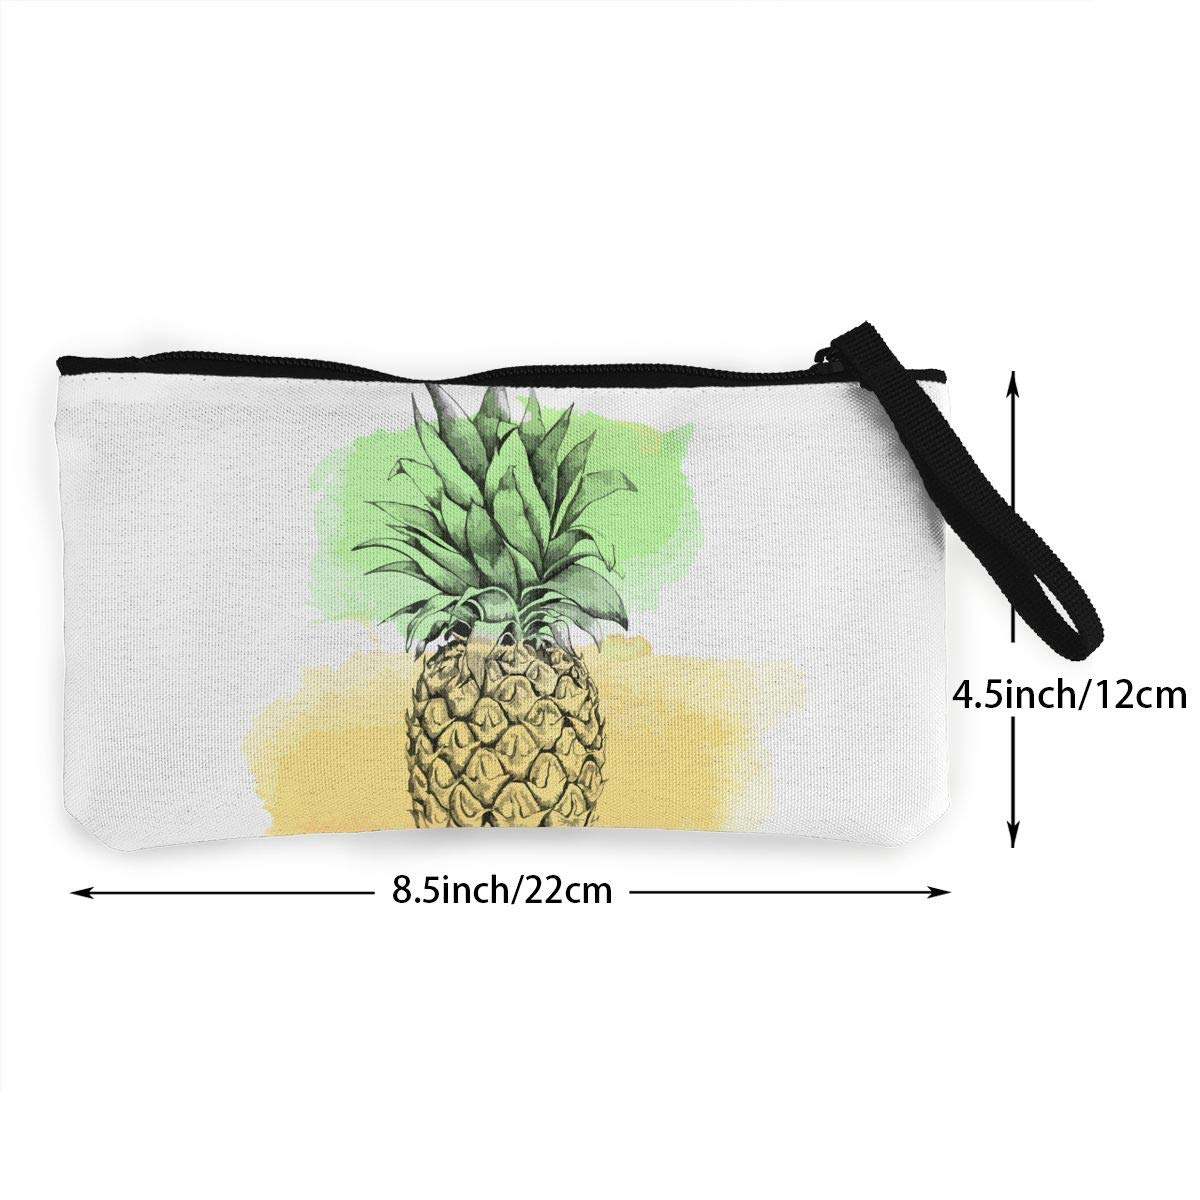 Pineapple1 Wallet Coin Purse Canvas Zipper Pencil Change Pouch For Birthday